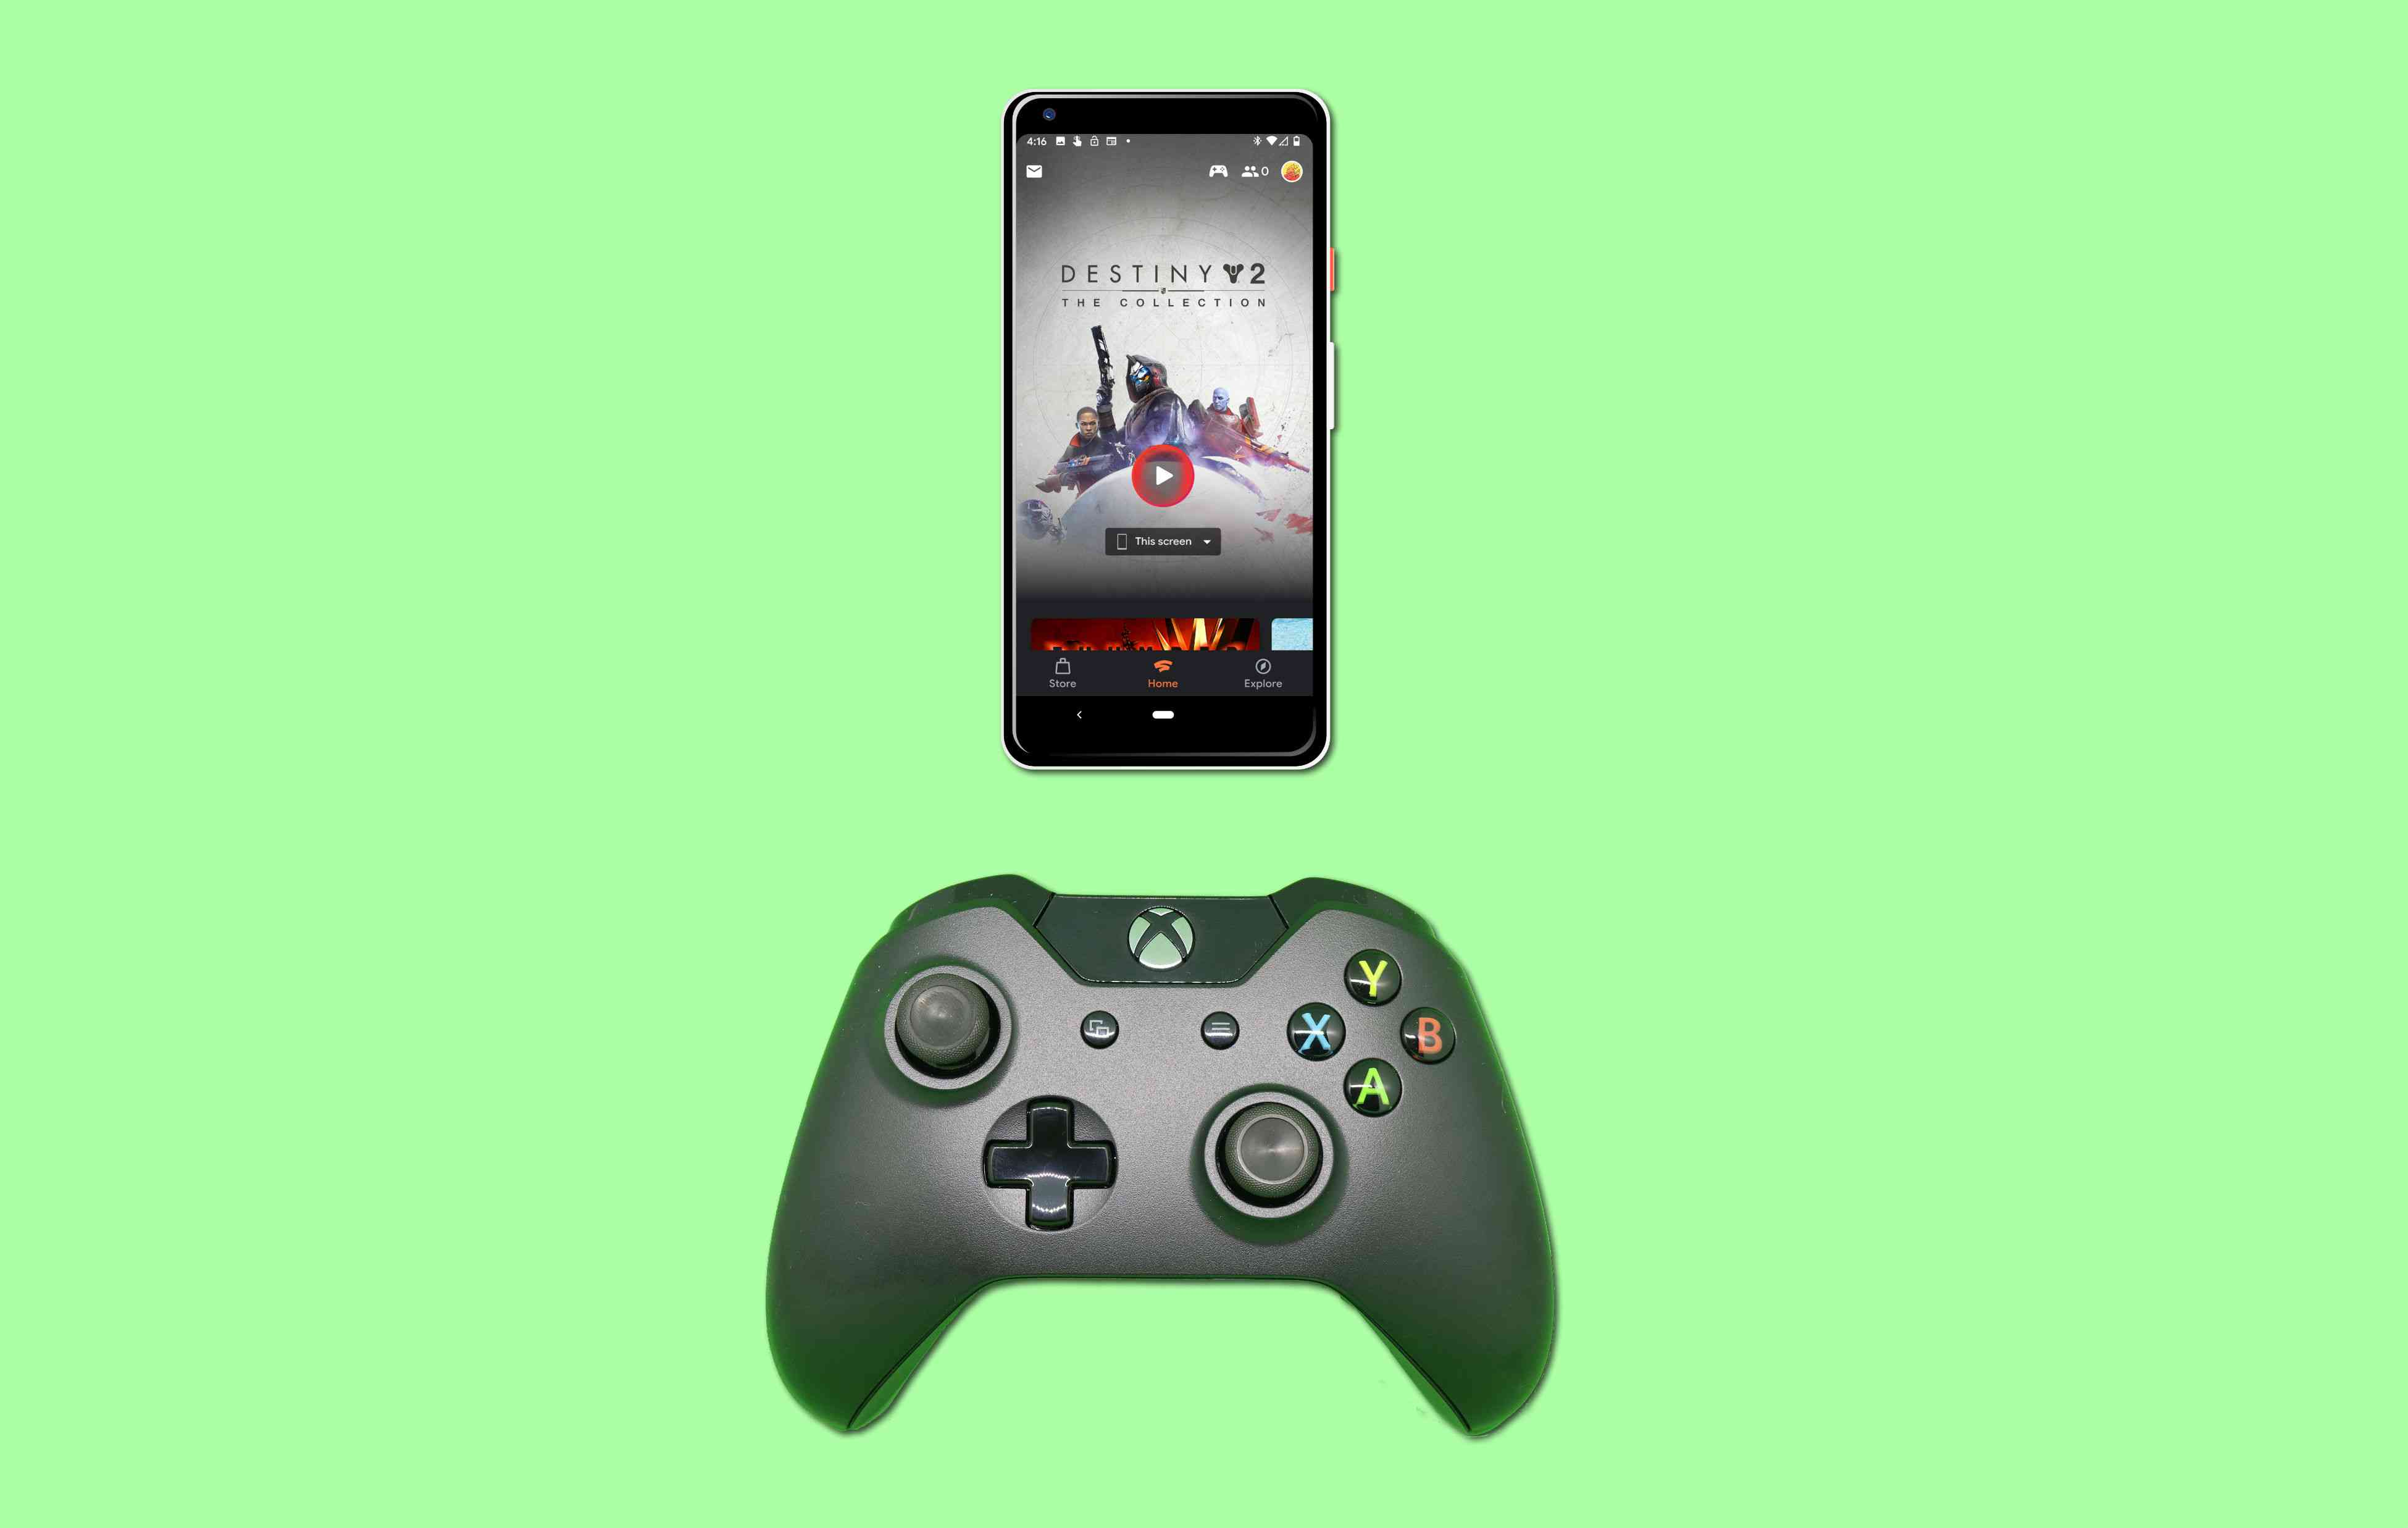 Google Stadia played on a Pixel phone with an Xbox One controller.